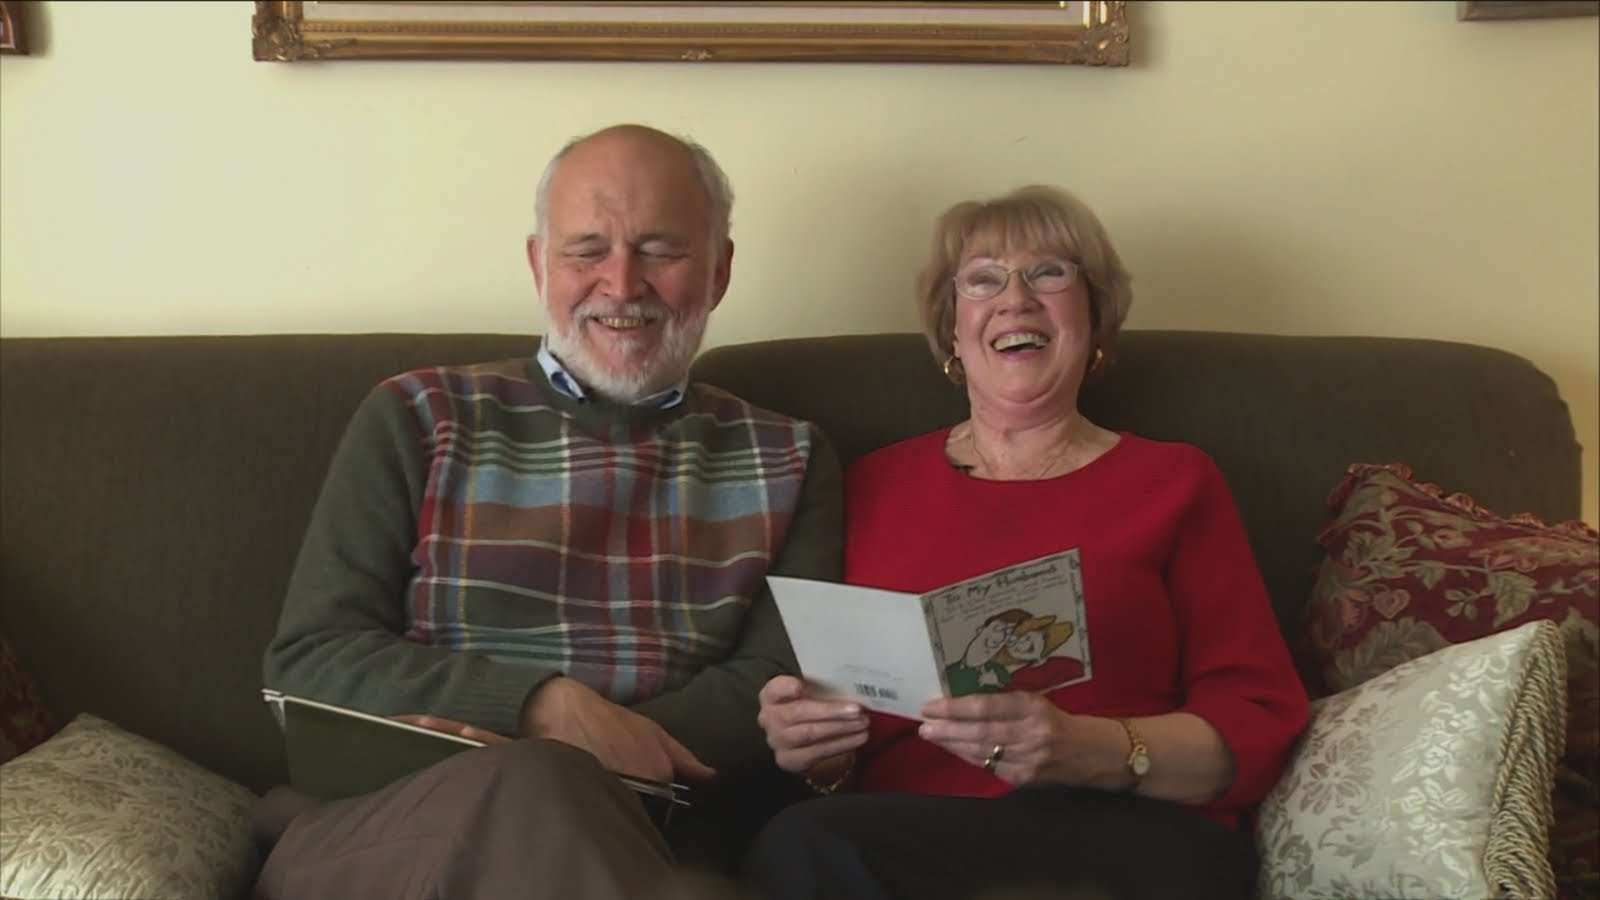 Husband Gives Over 10,000 Love Letters to Loving Wife - YouTube